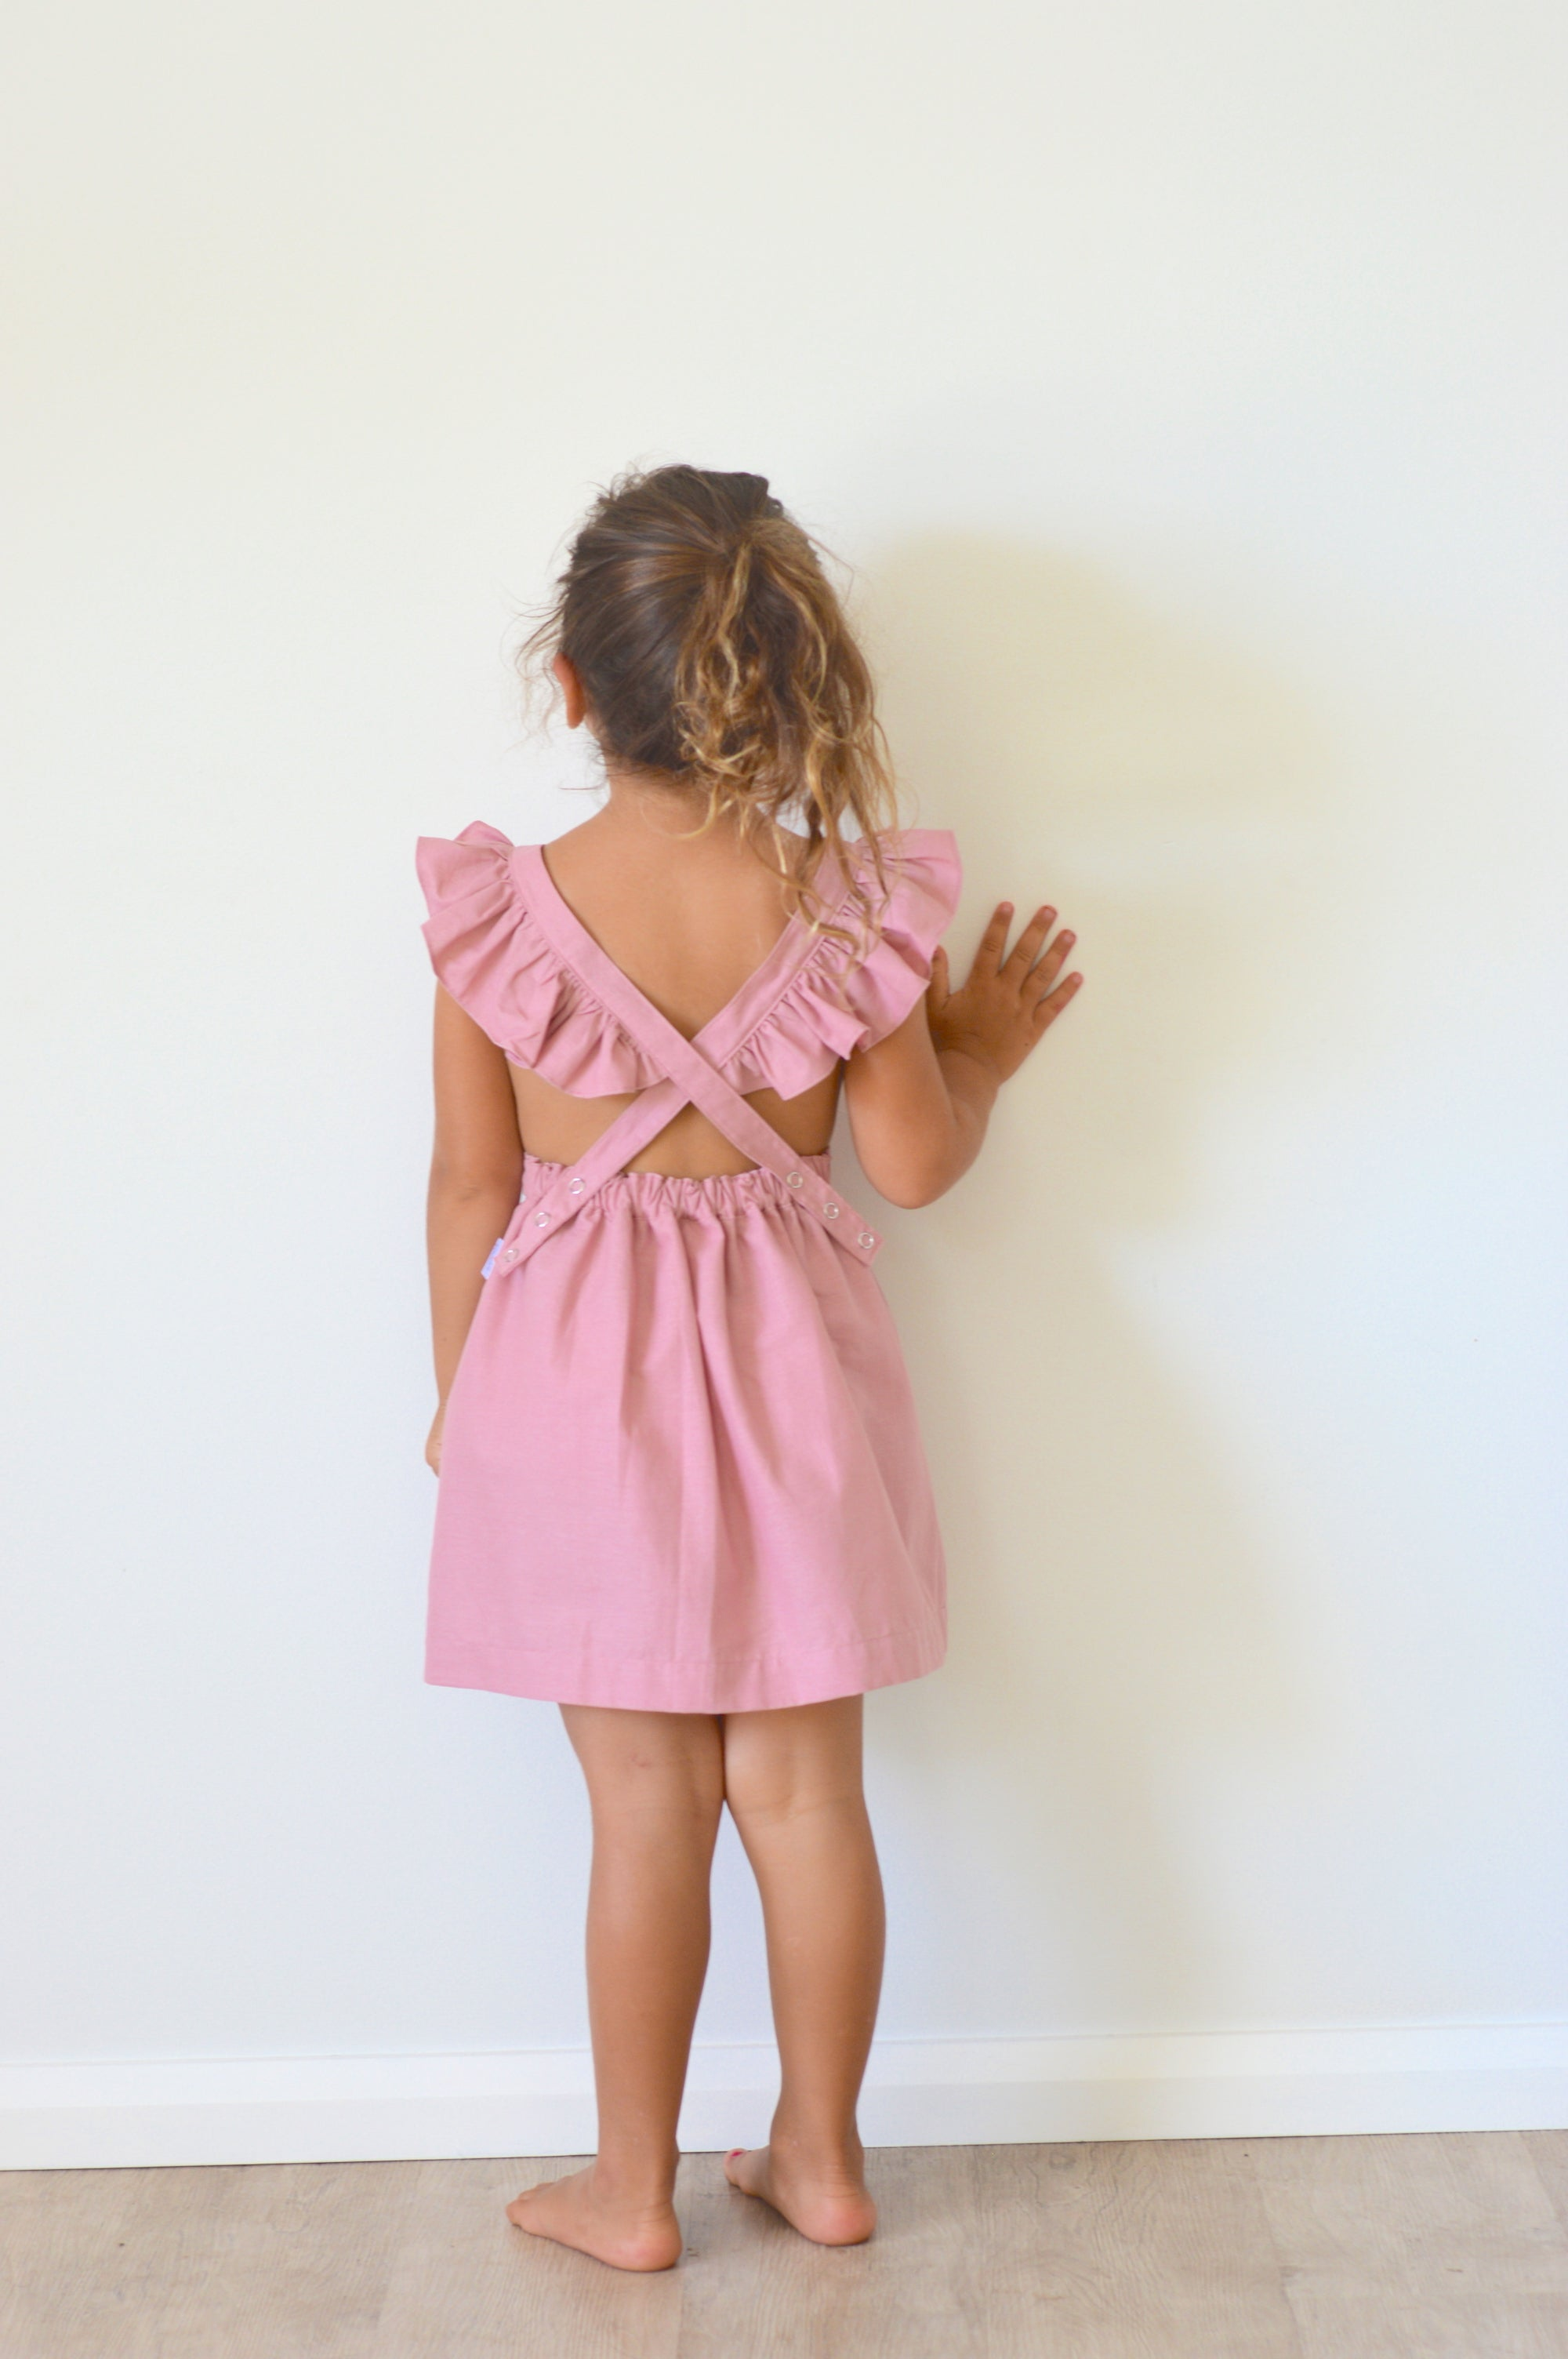 Periwinkle Pinafore - Dusty Rose with Ruffles